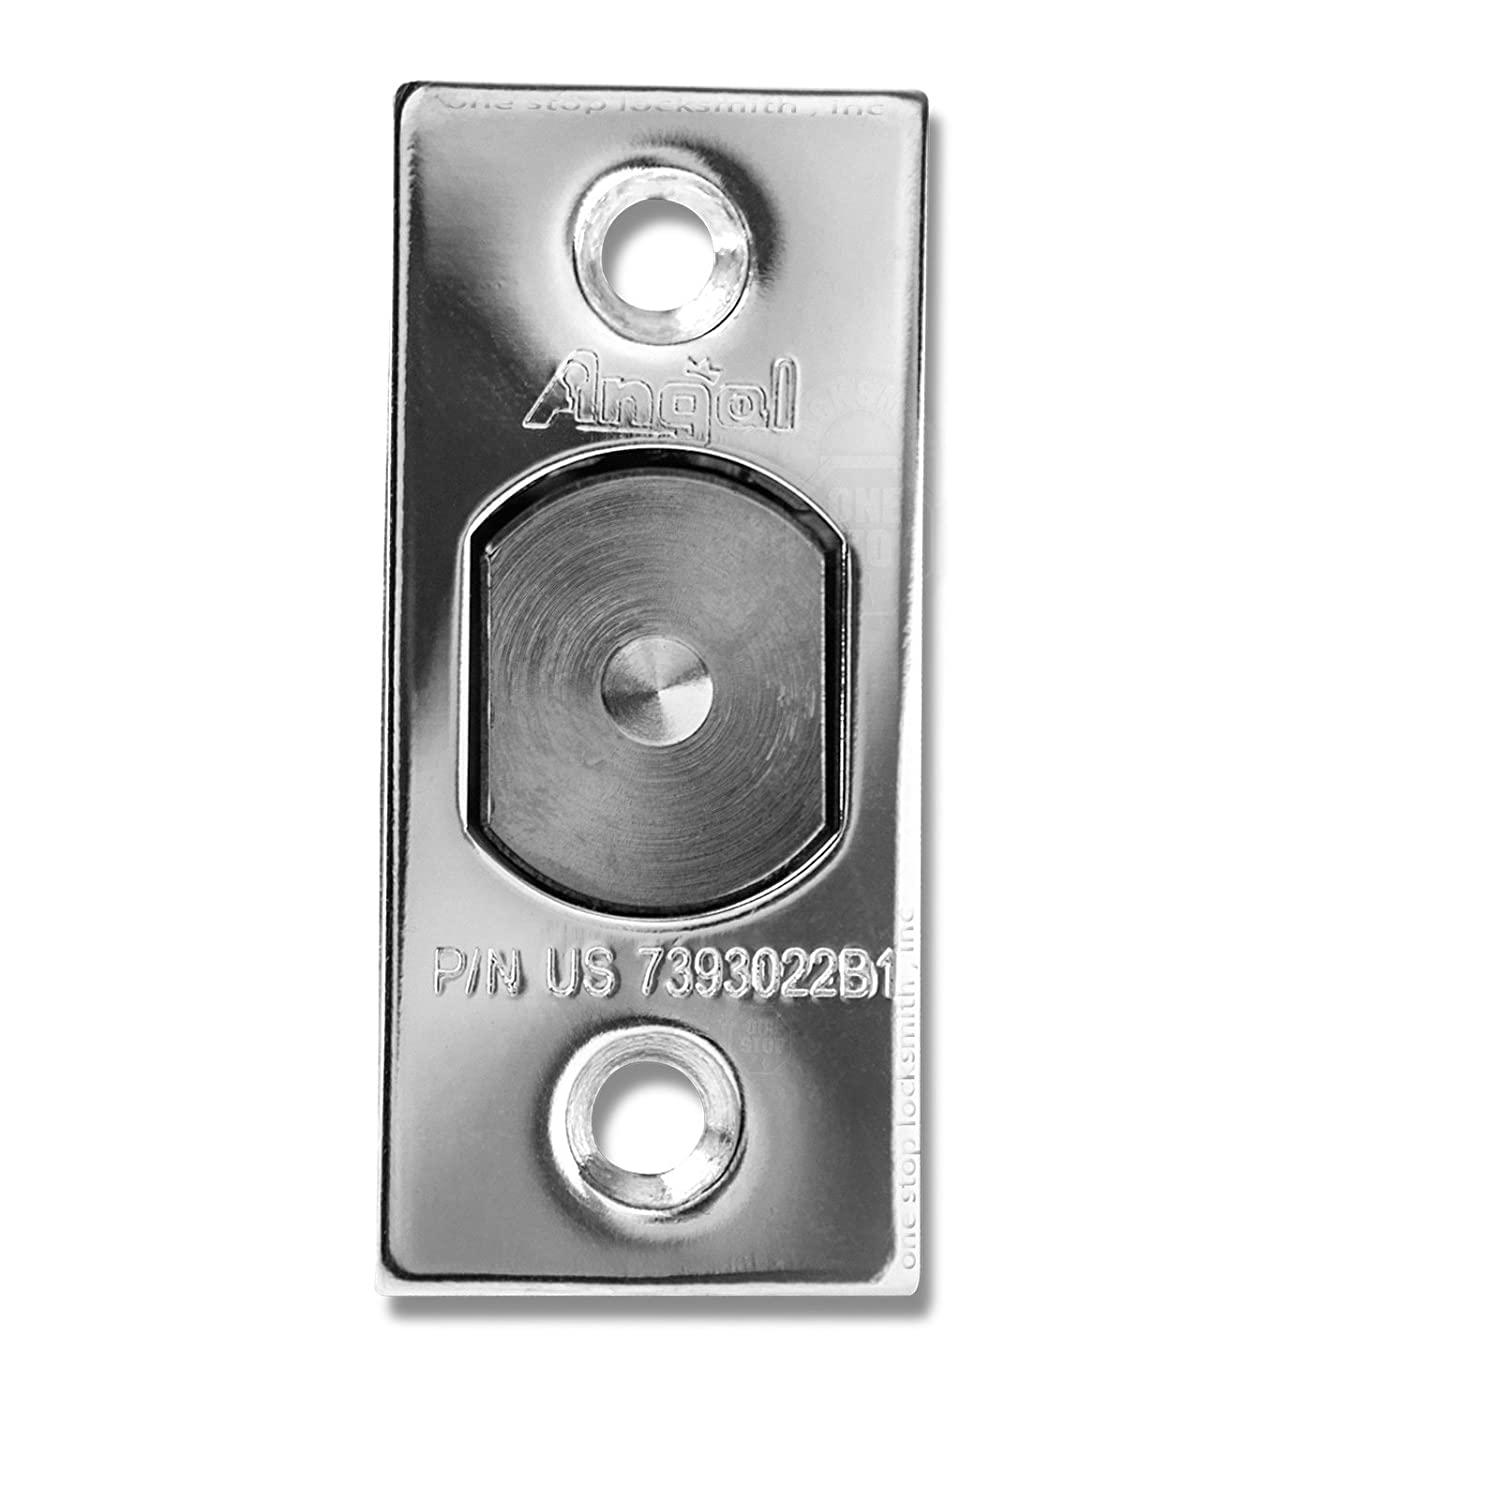 angal high security single deadbolt lock silver angal lock